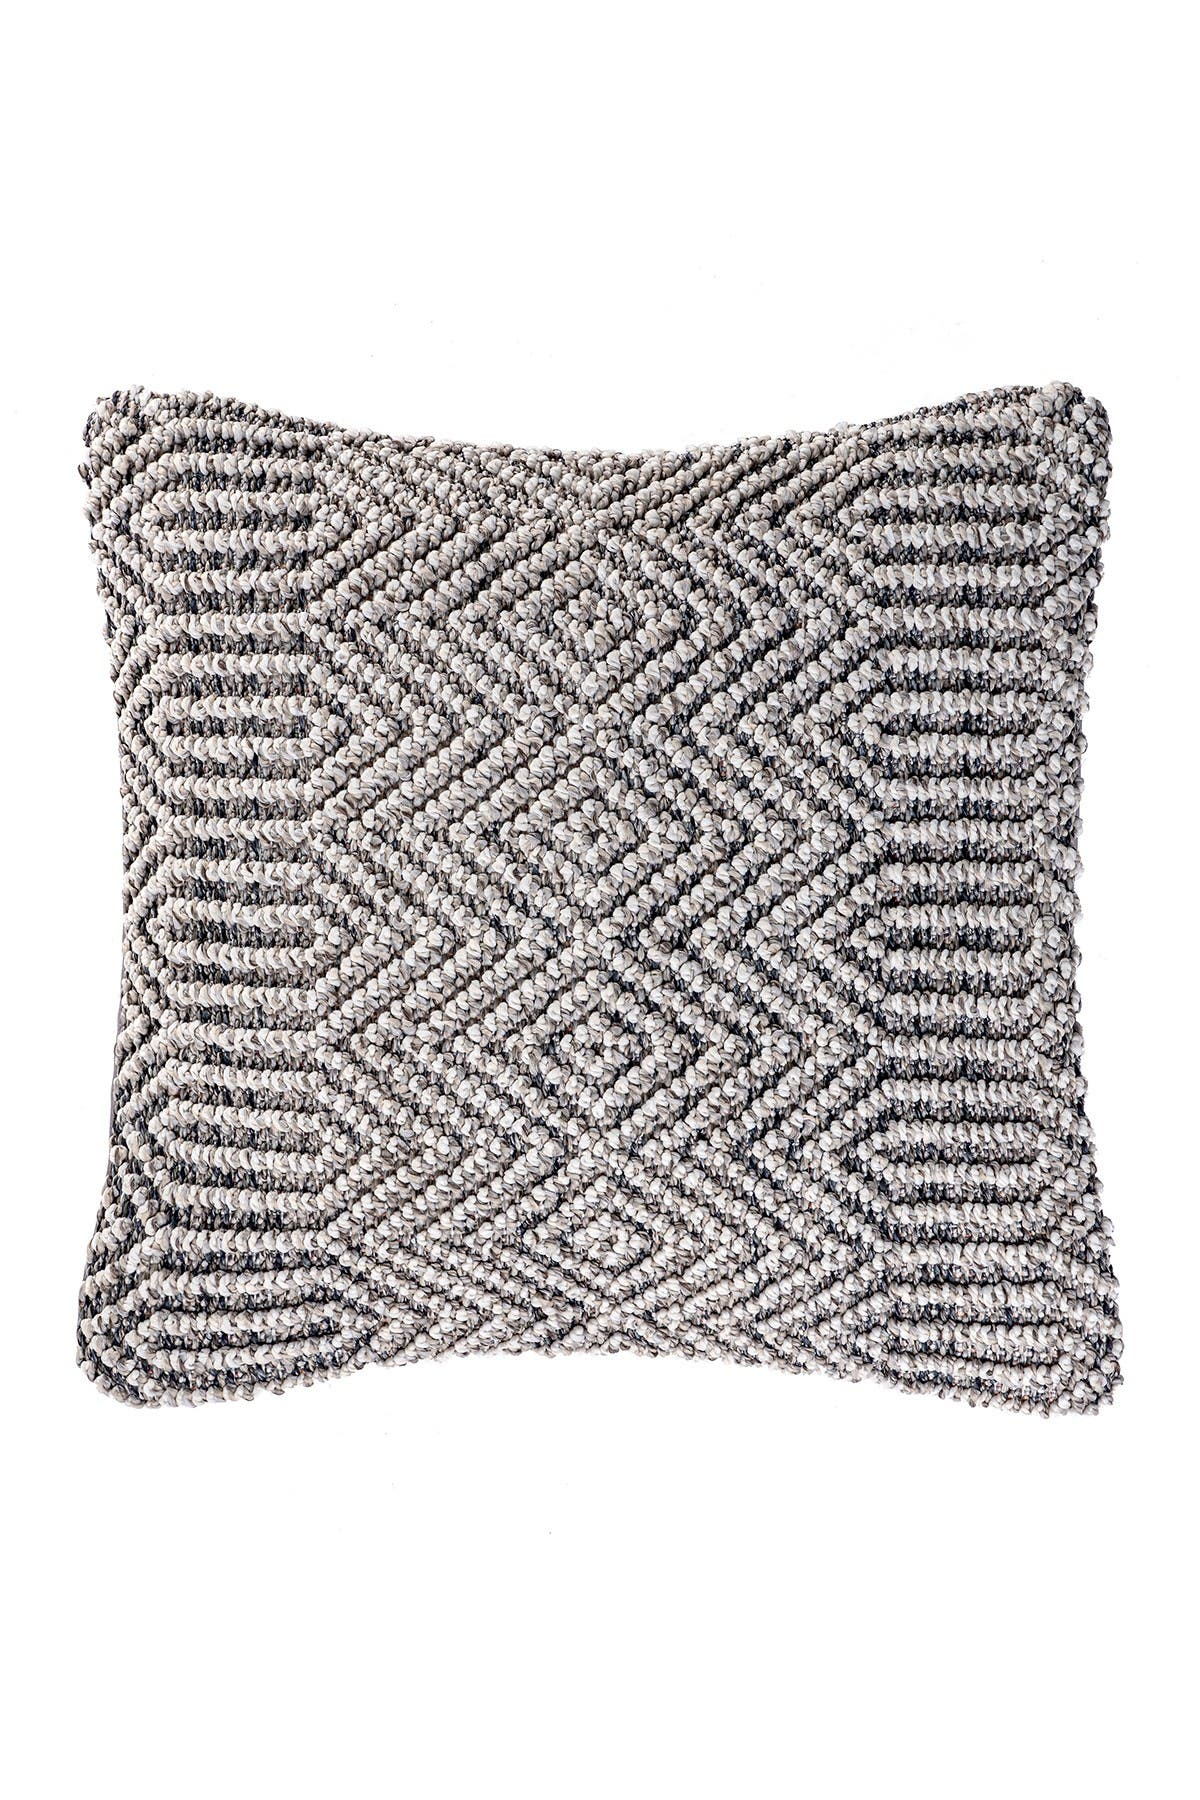 Image of nuLOOM Rigel Textured Abstract Throw Pillow Cover